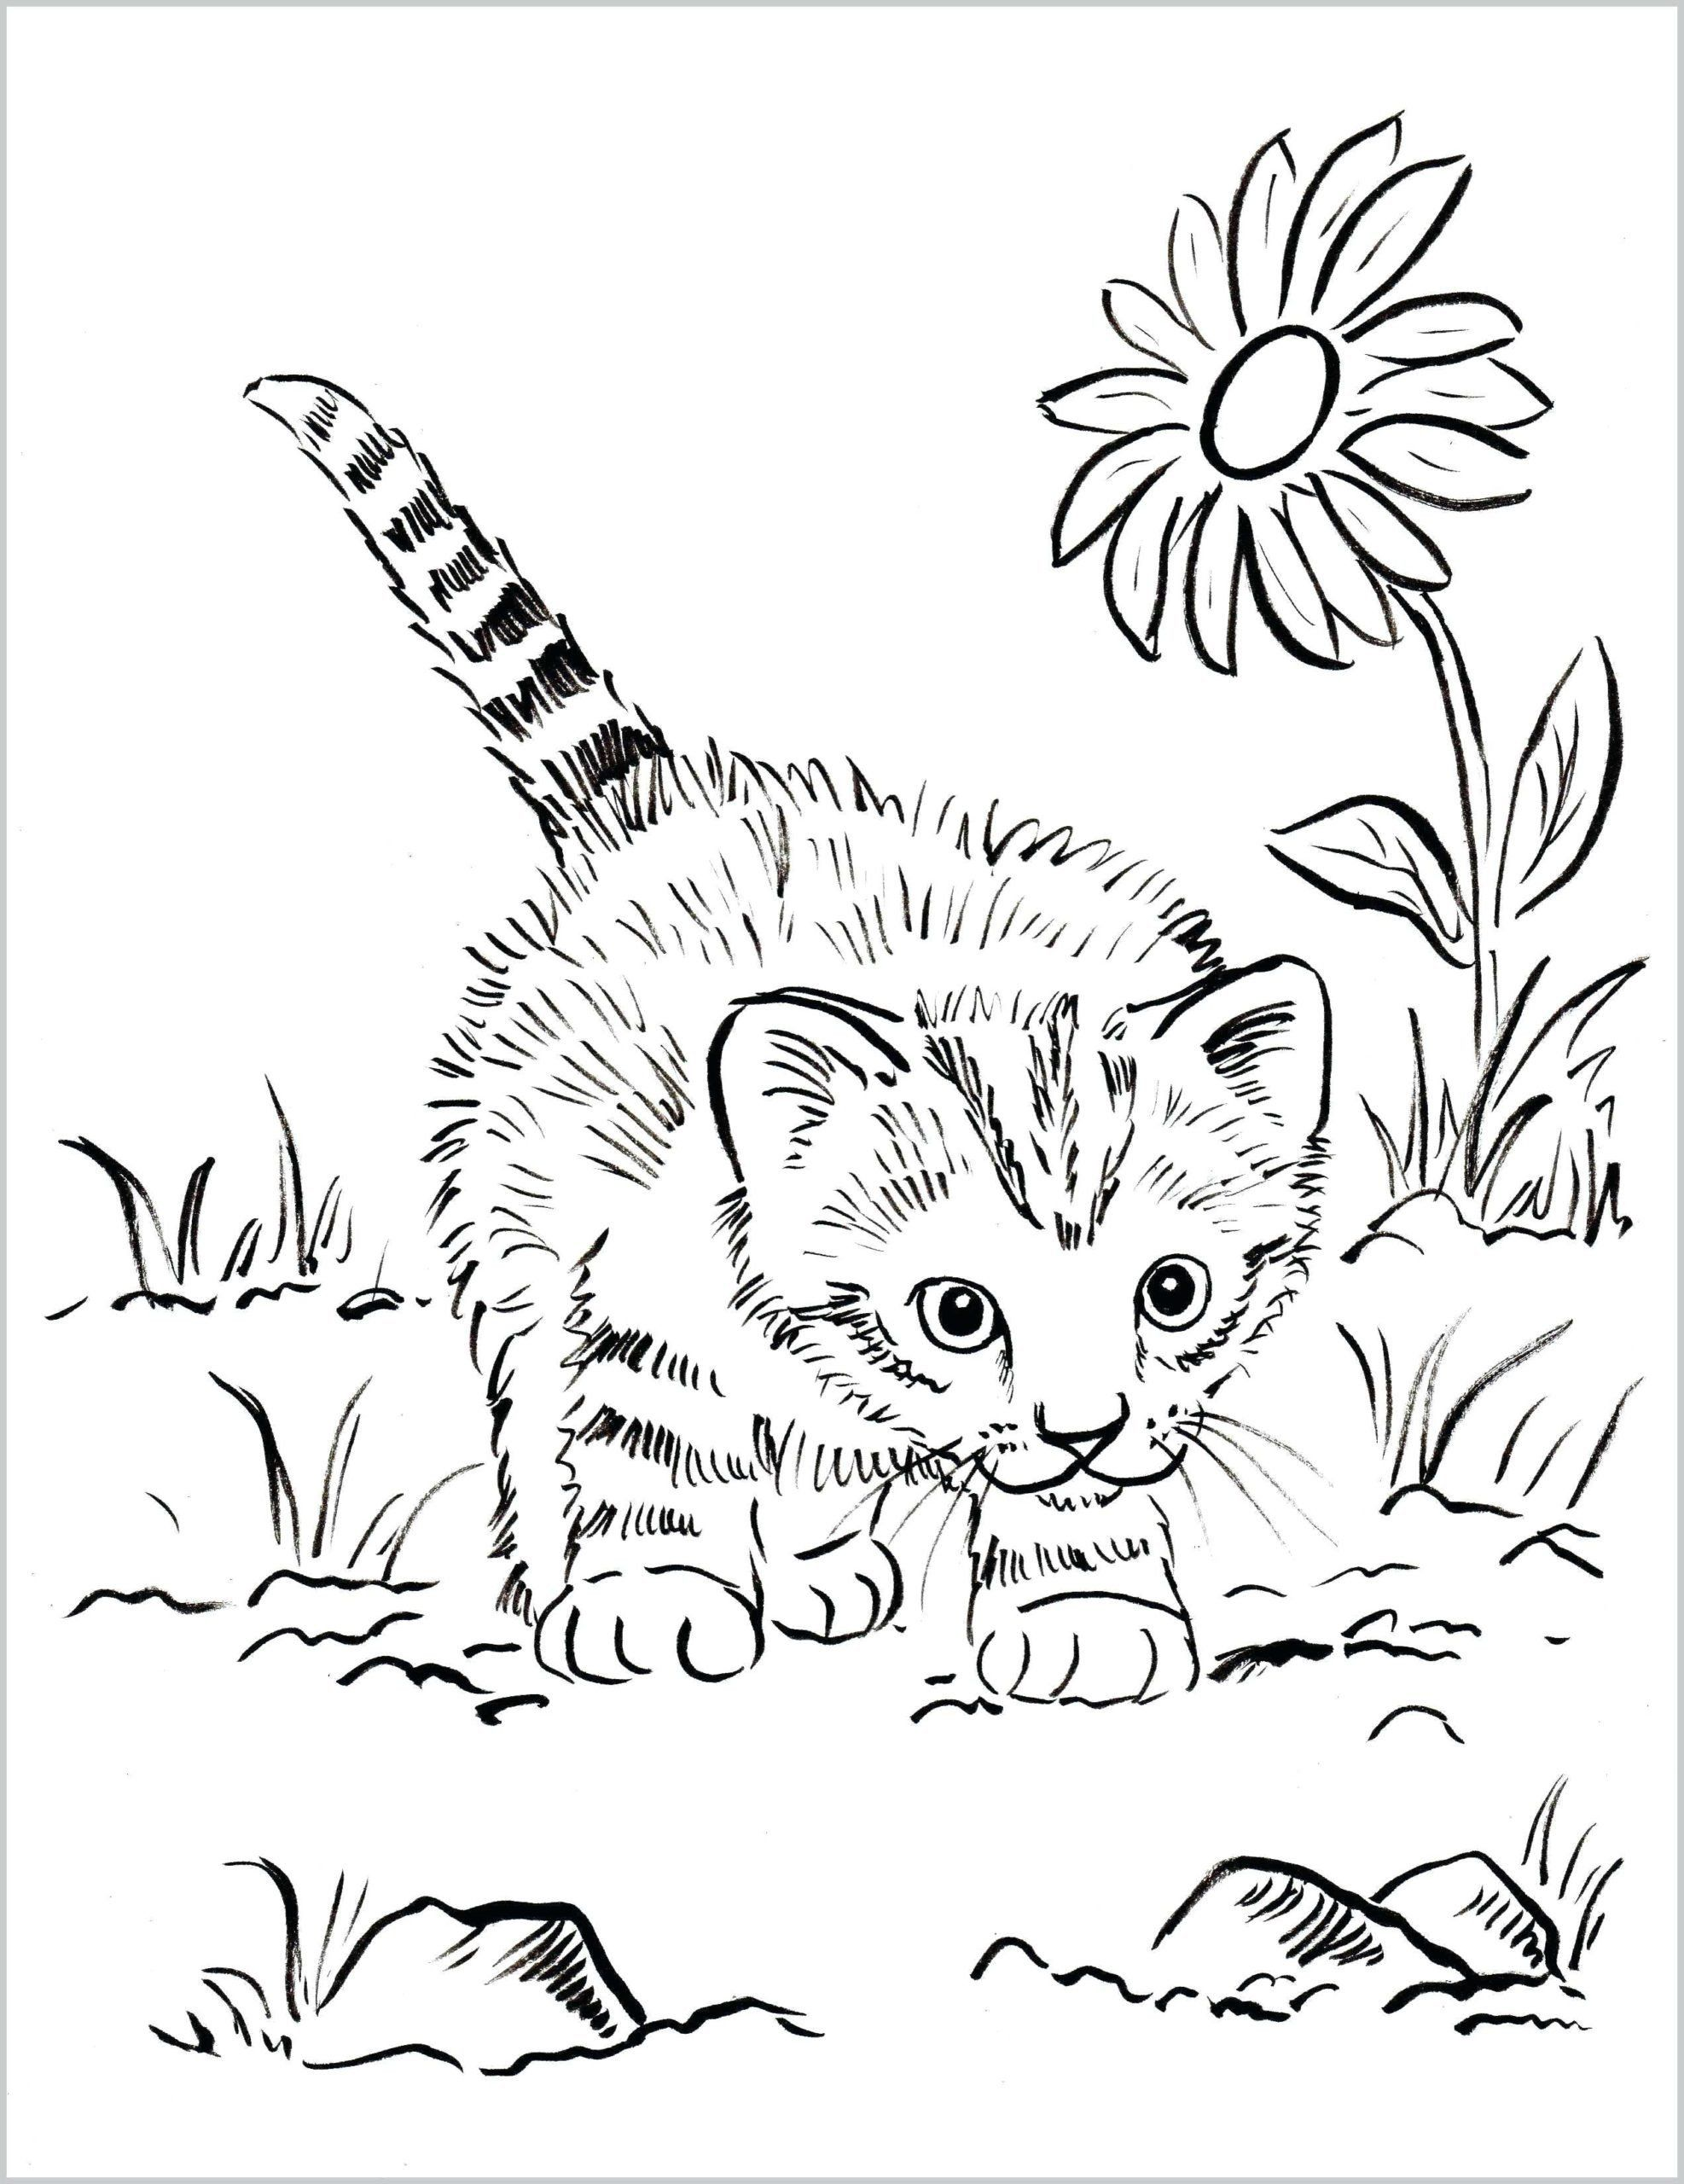 Cute Kitten Coloring Pages Idea Free Coloring Sheets Printable Christmas Coloring Pages Puppy Coloring Pages Animal Coloring Pages